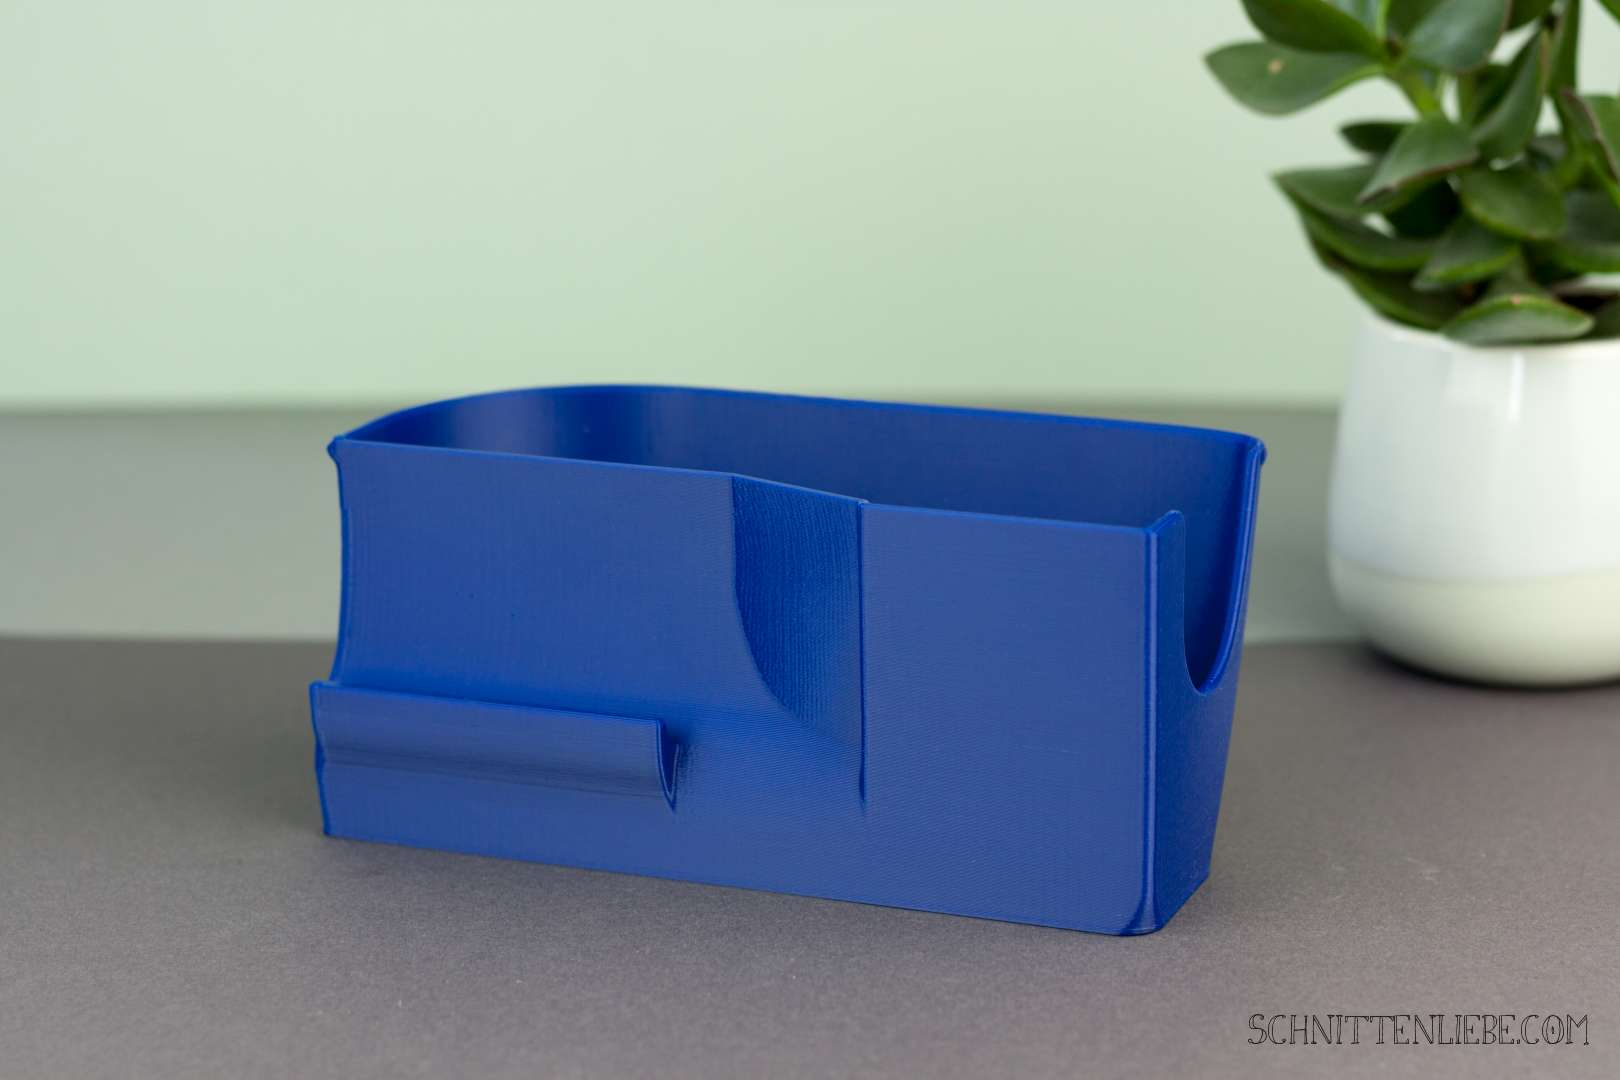 Schnittenliebe 3D collecting container Baby Lock Desire 3 royal